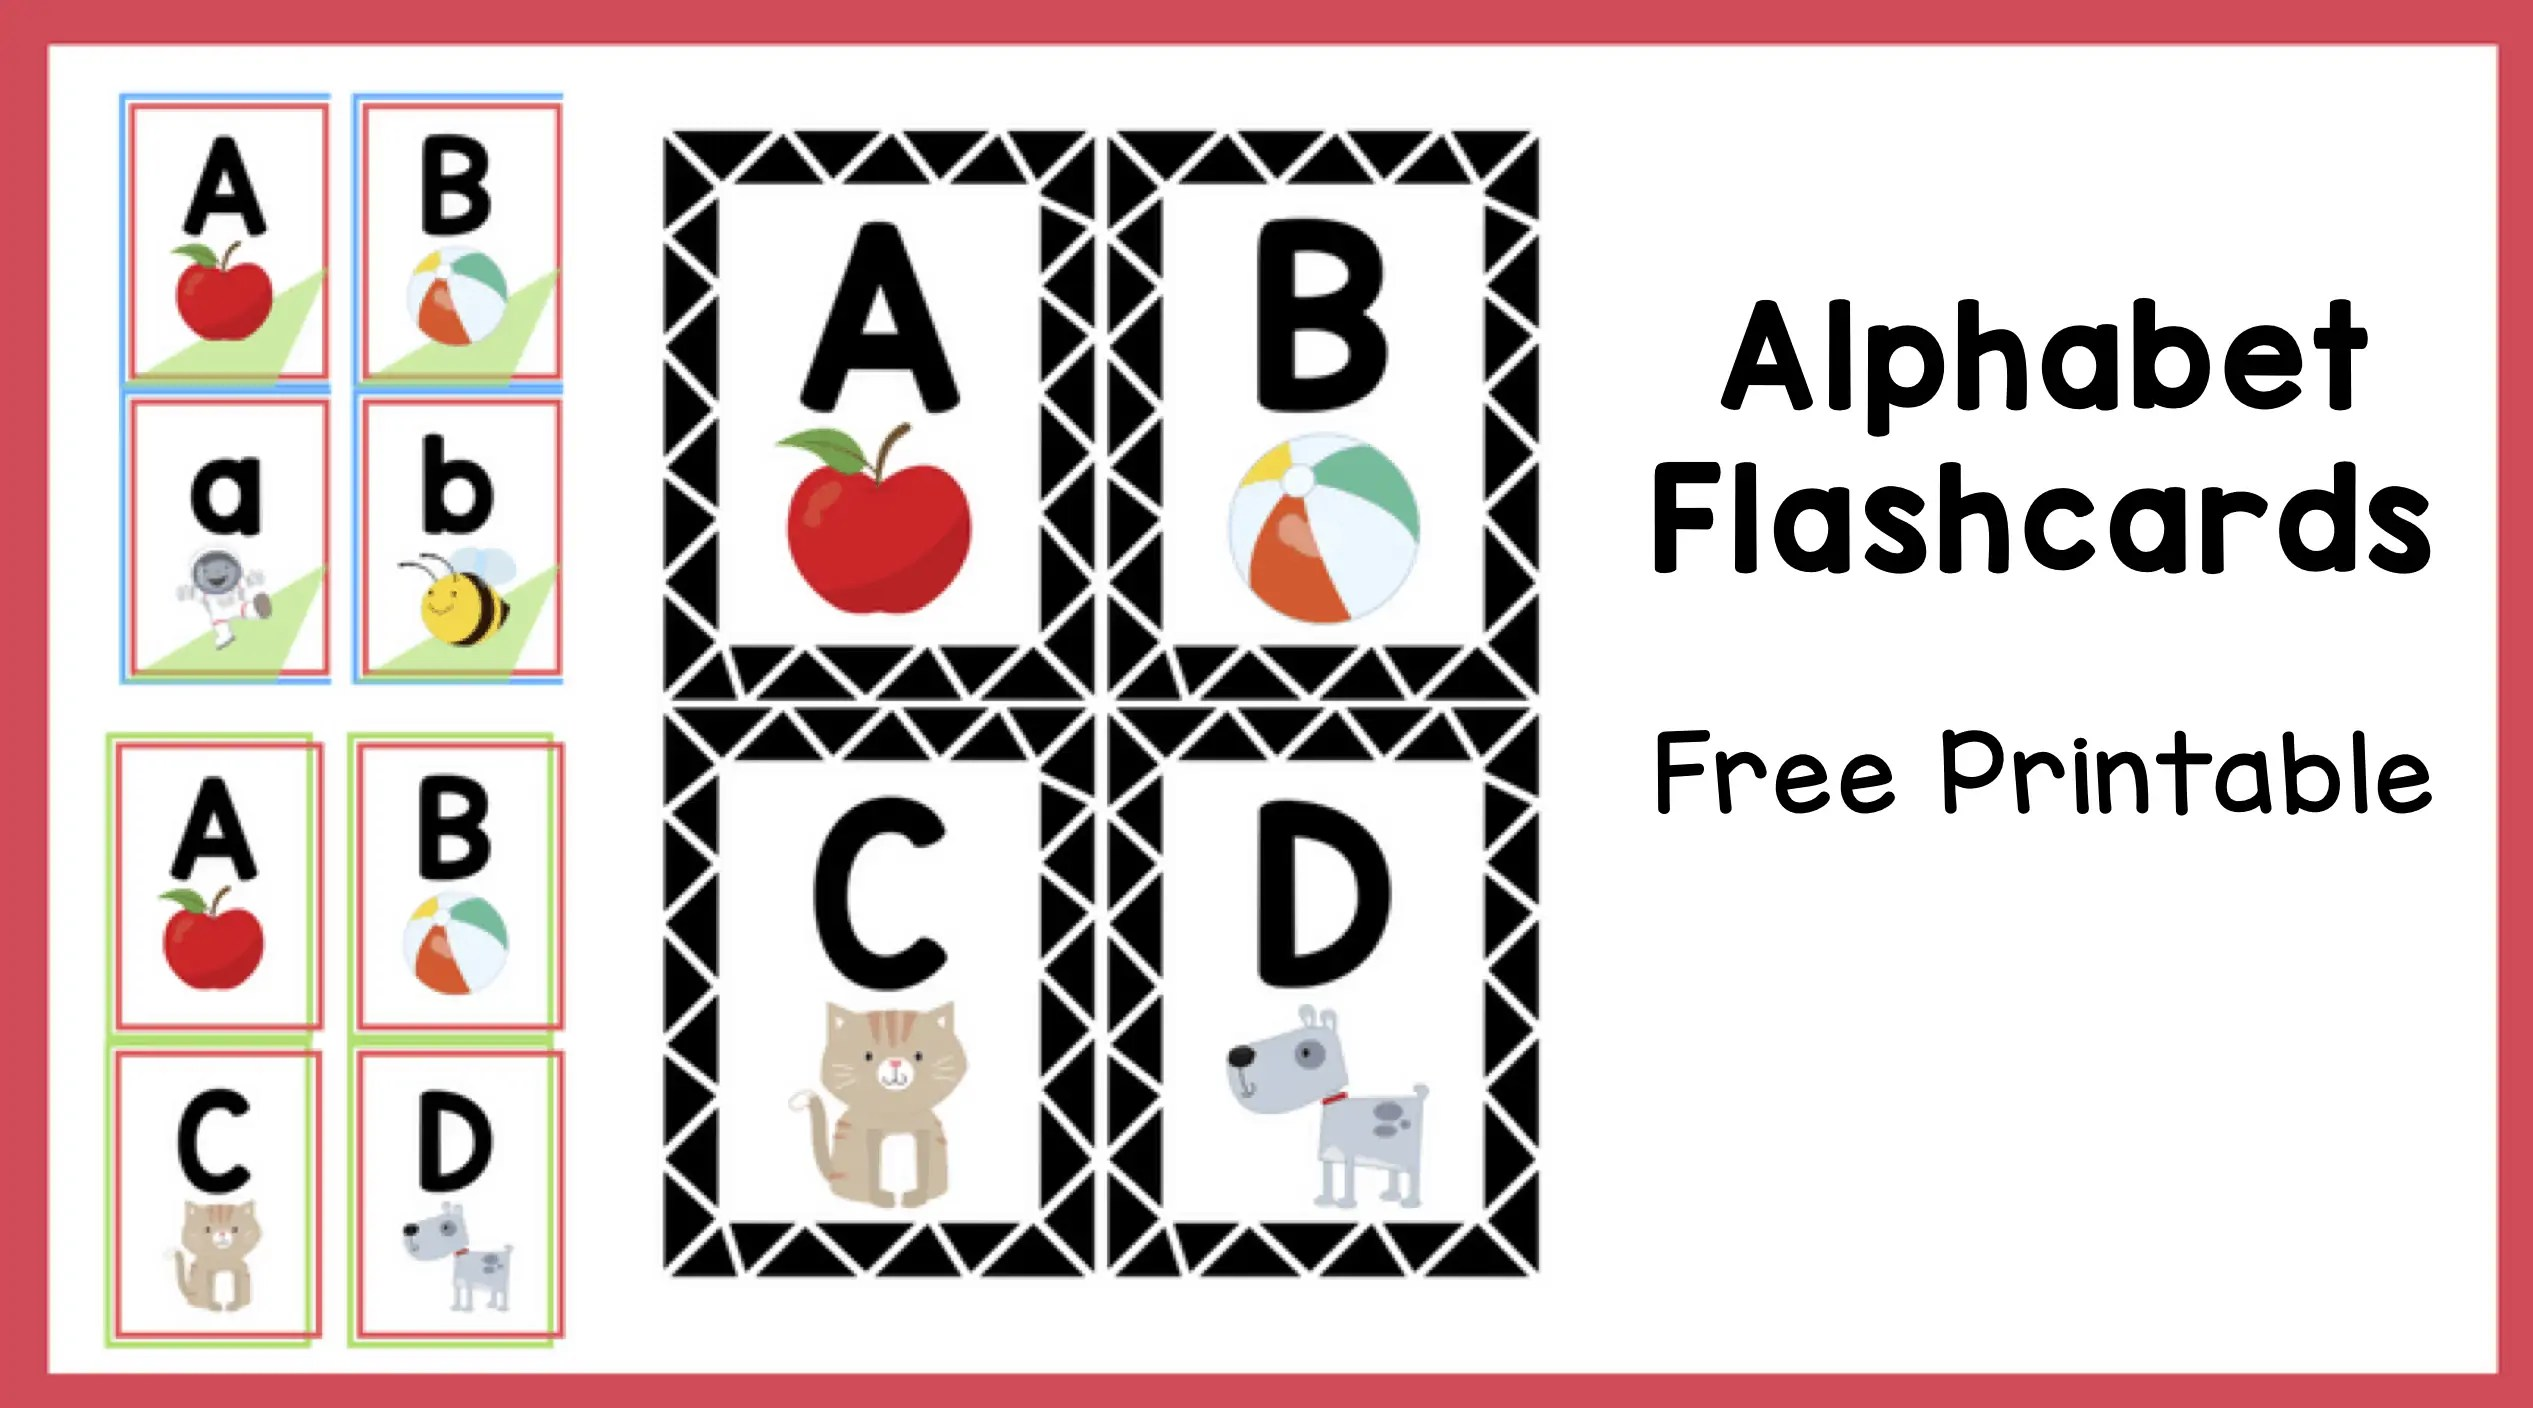 photo about Printable Abc Flash Cards identified as Alphabet Flashcards Cost-free Printable - The Training Aunt